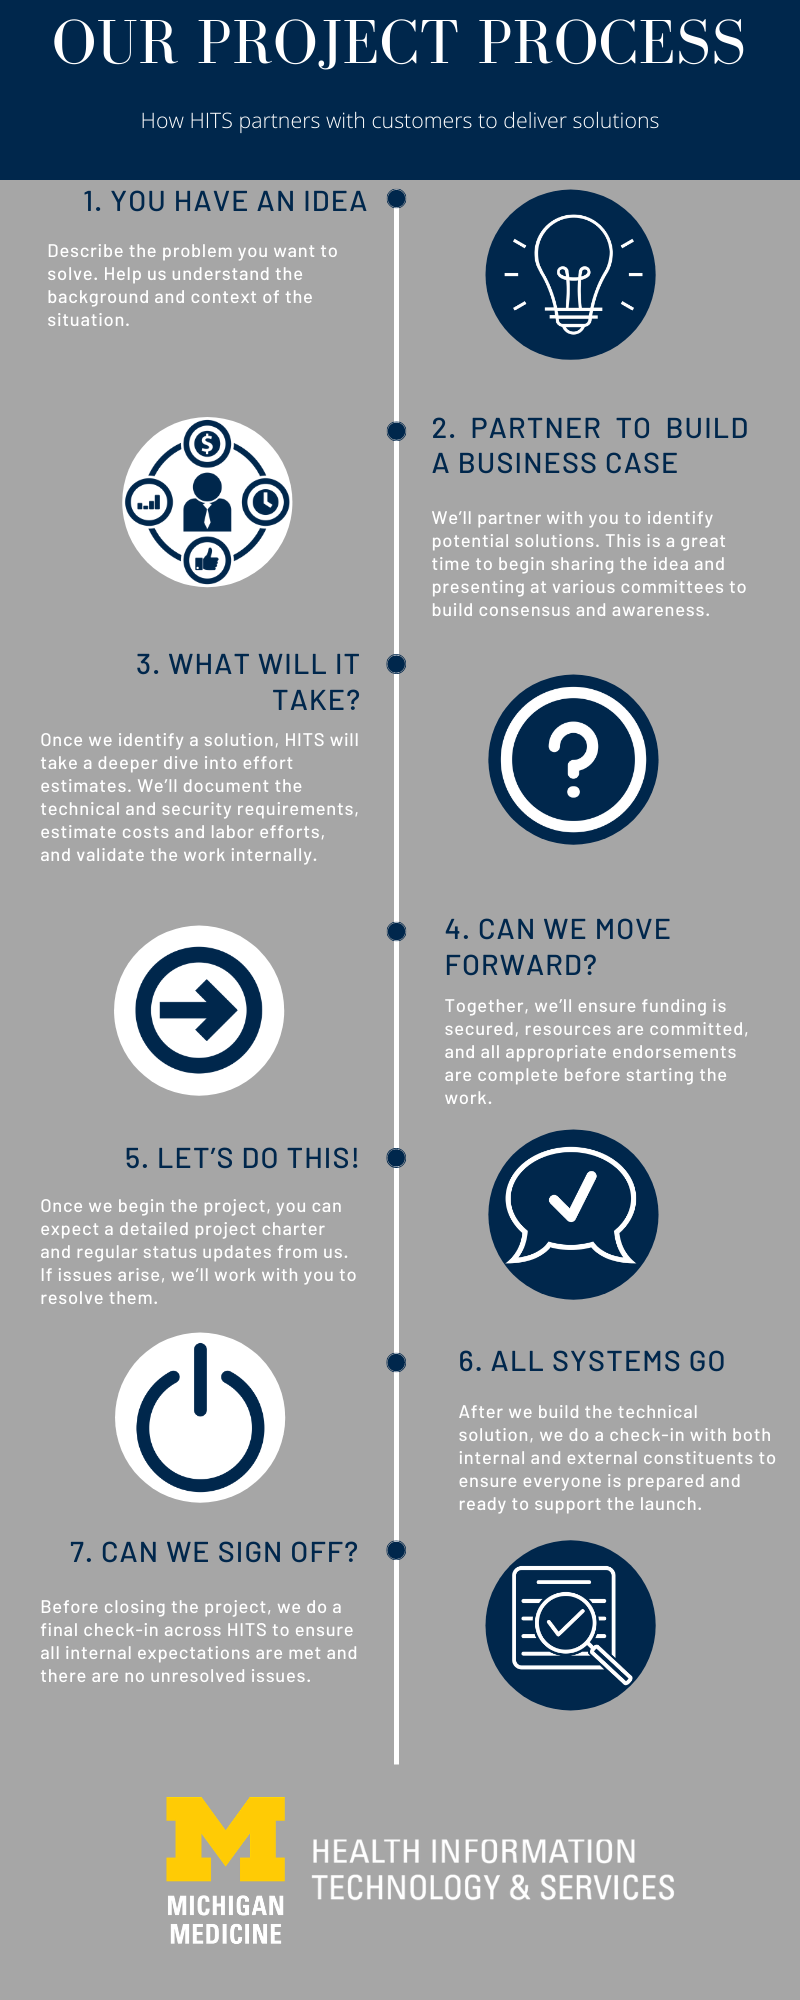 HITS how we work infographic